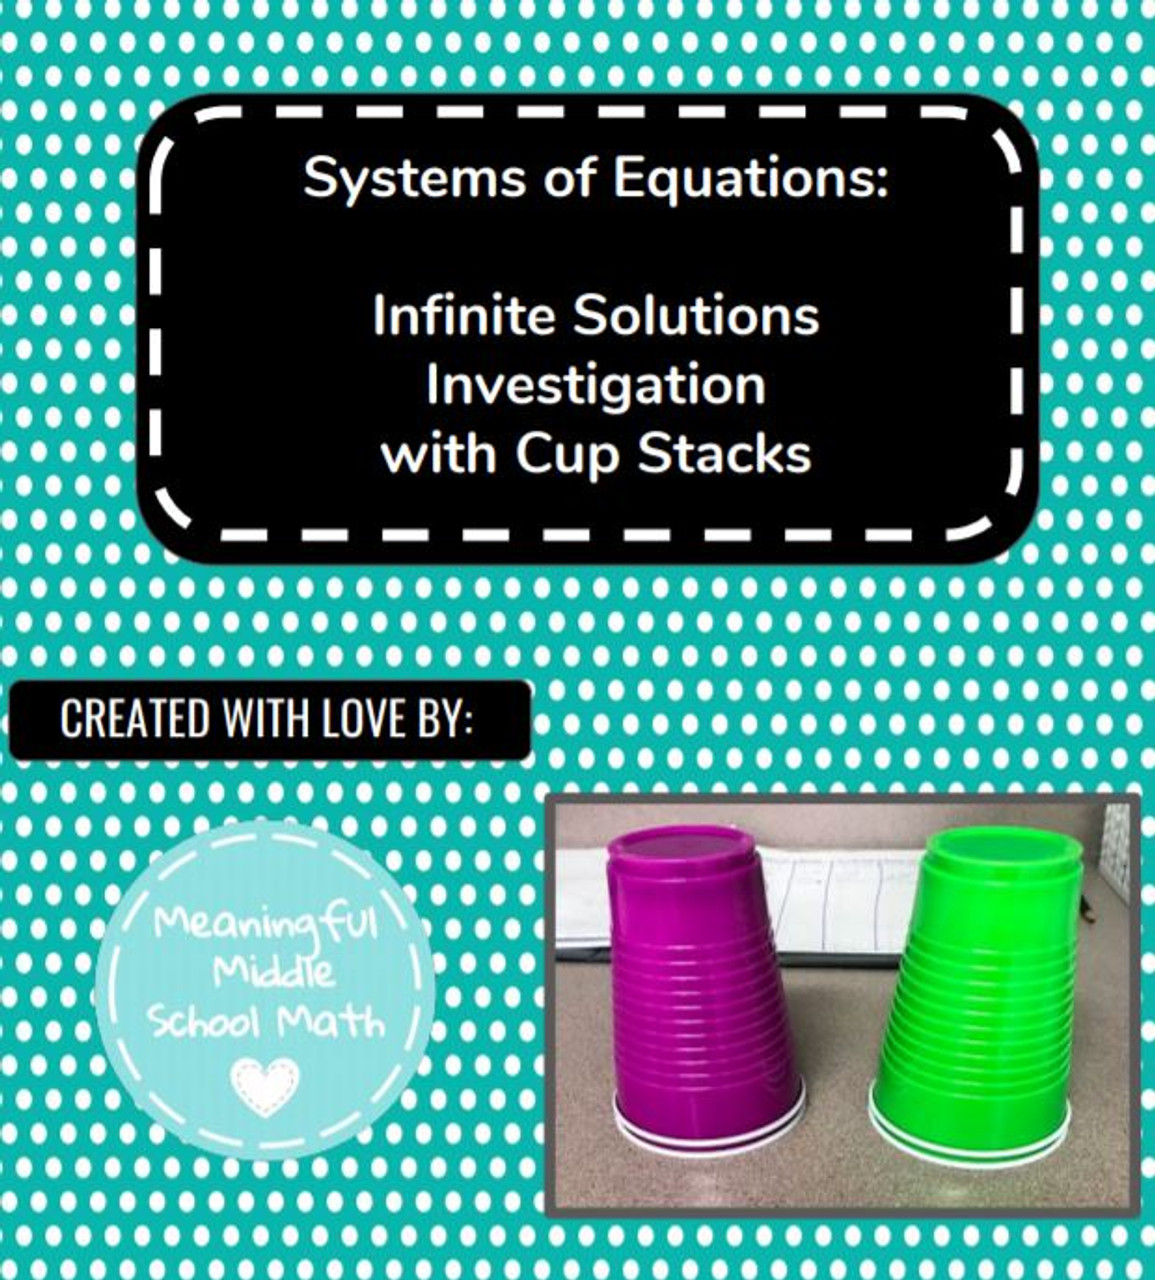 Systems of Equations: Infinite Solutions Investigation with Cup Stacks